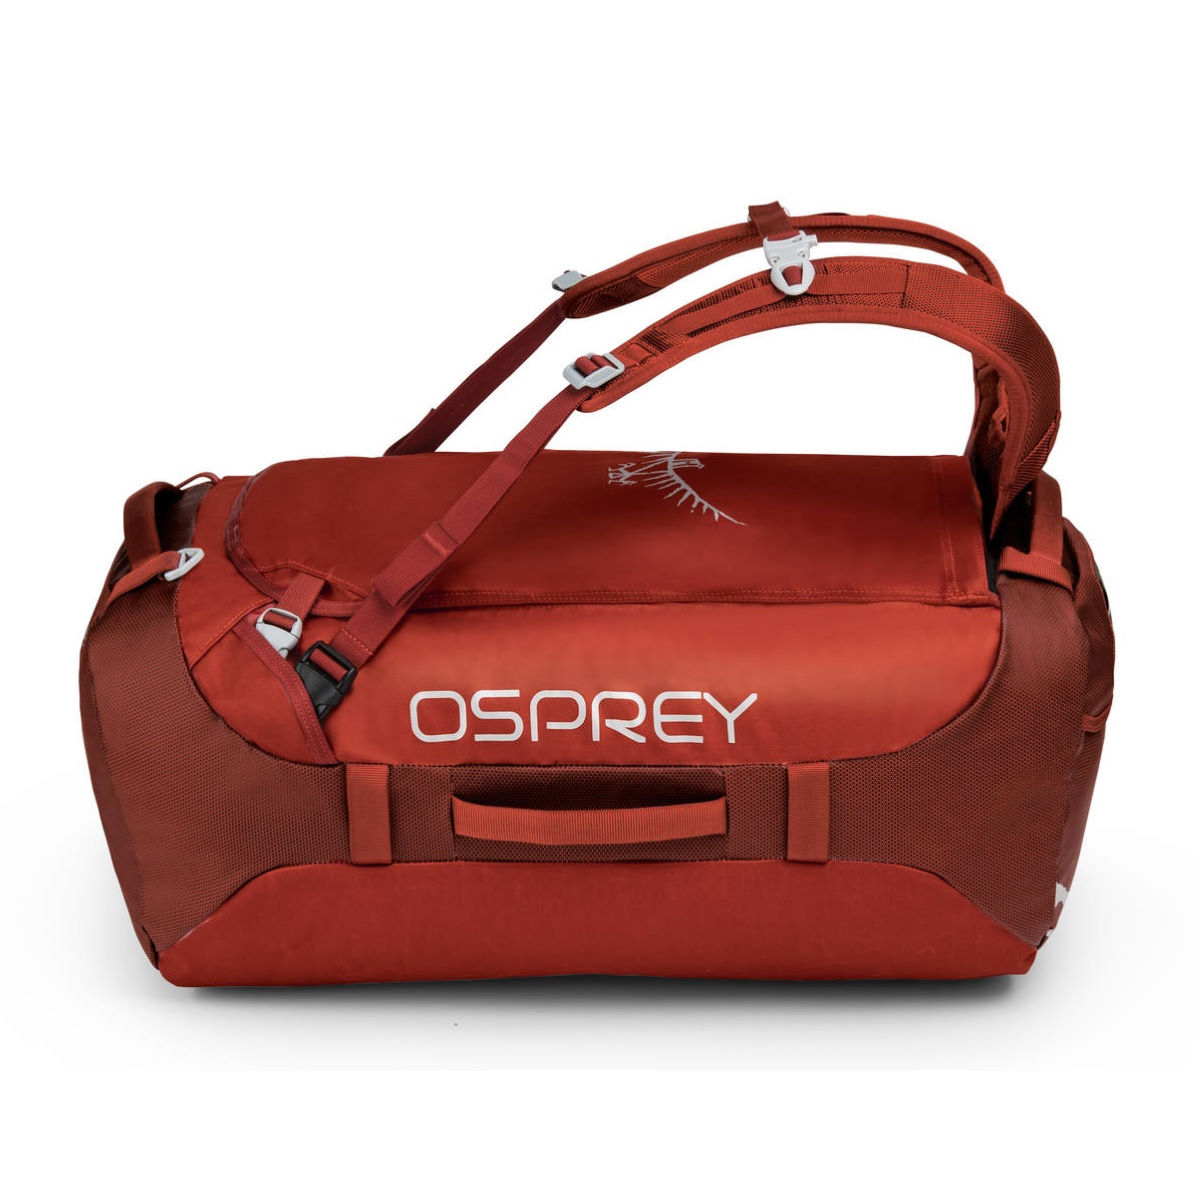 Sac Osprey Transporter 65 Holdall - Taille unique Ruffian Red